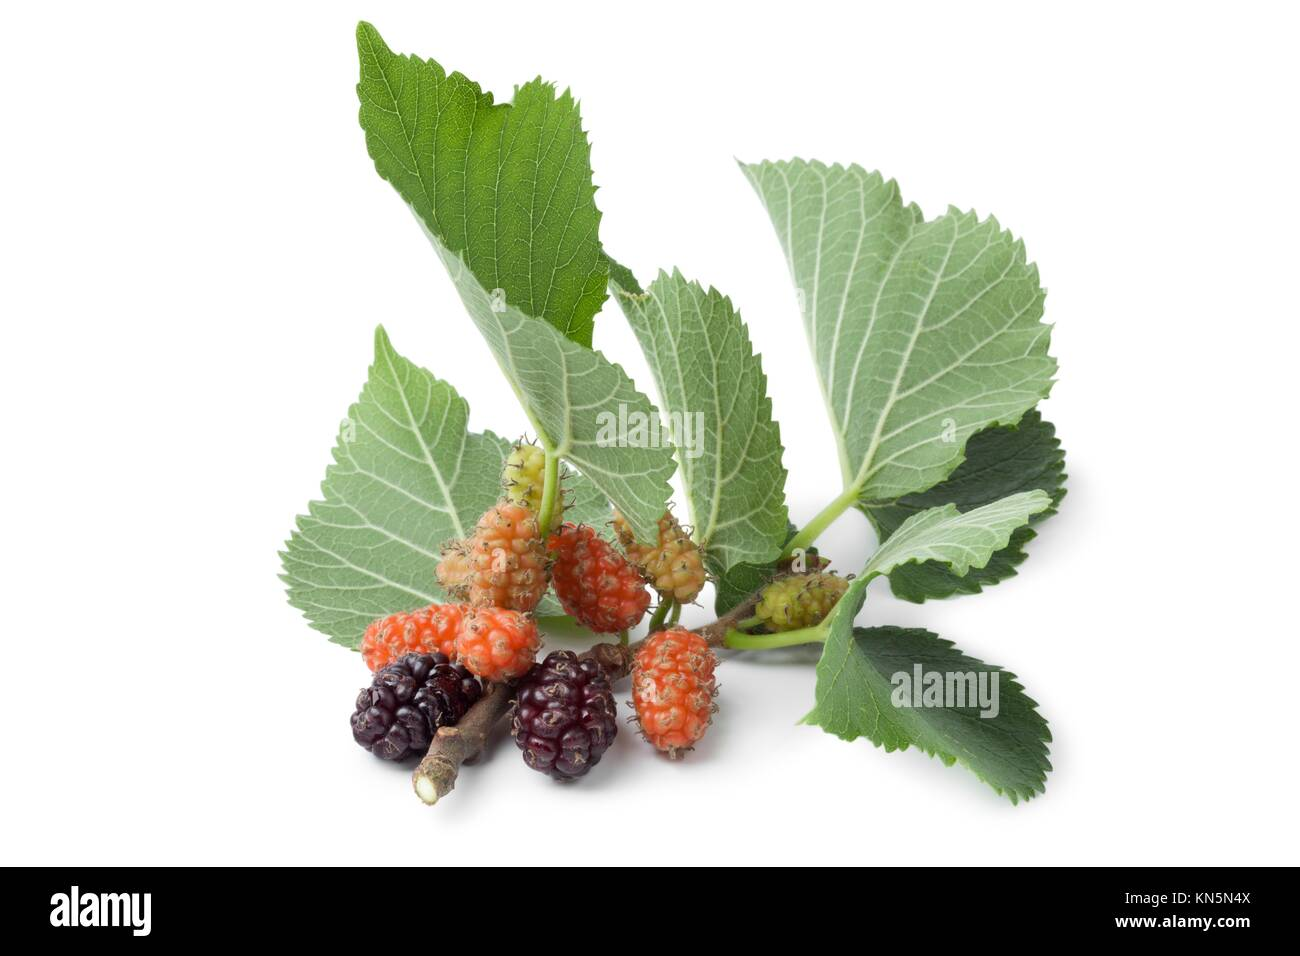 Fresh twig with mulberries on white background. - Stock Image